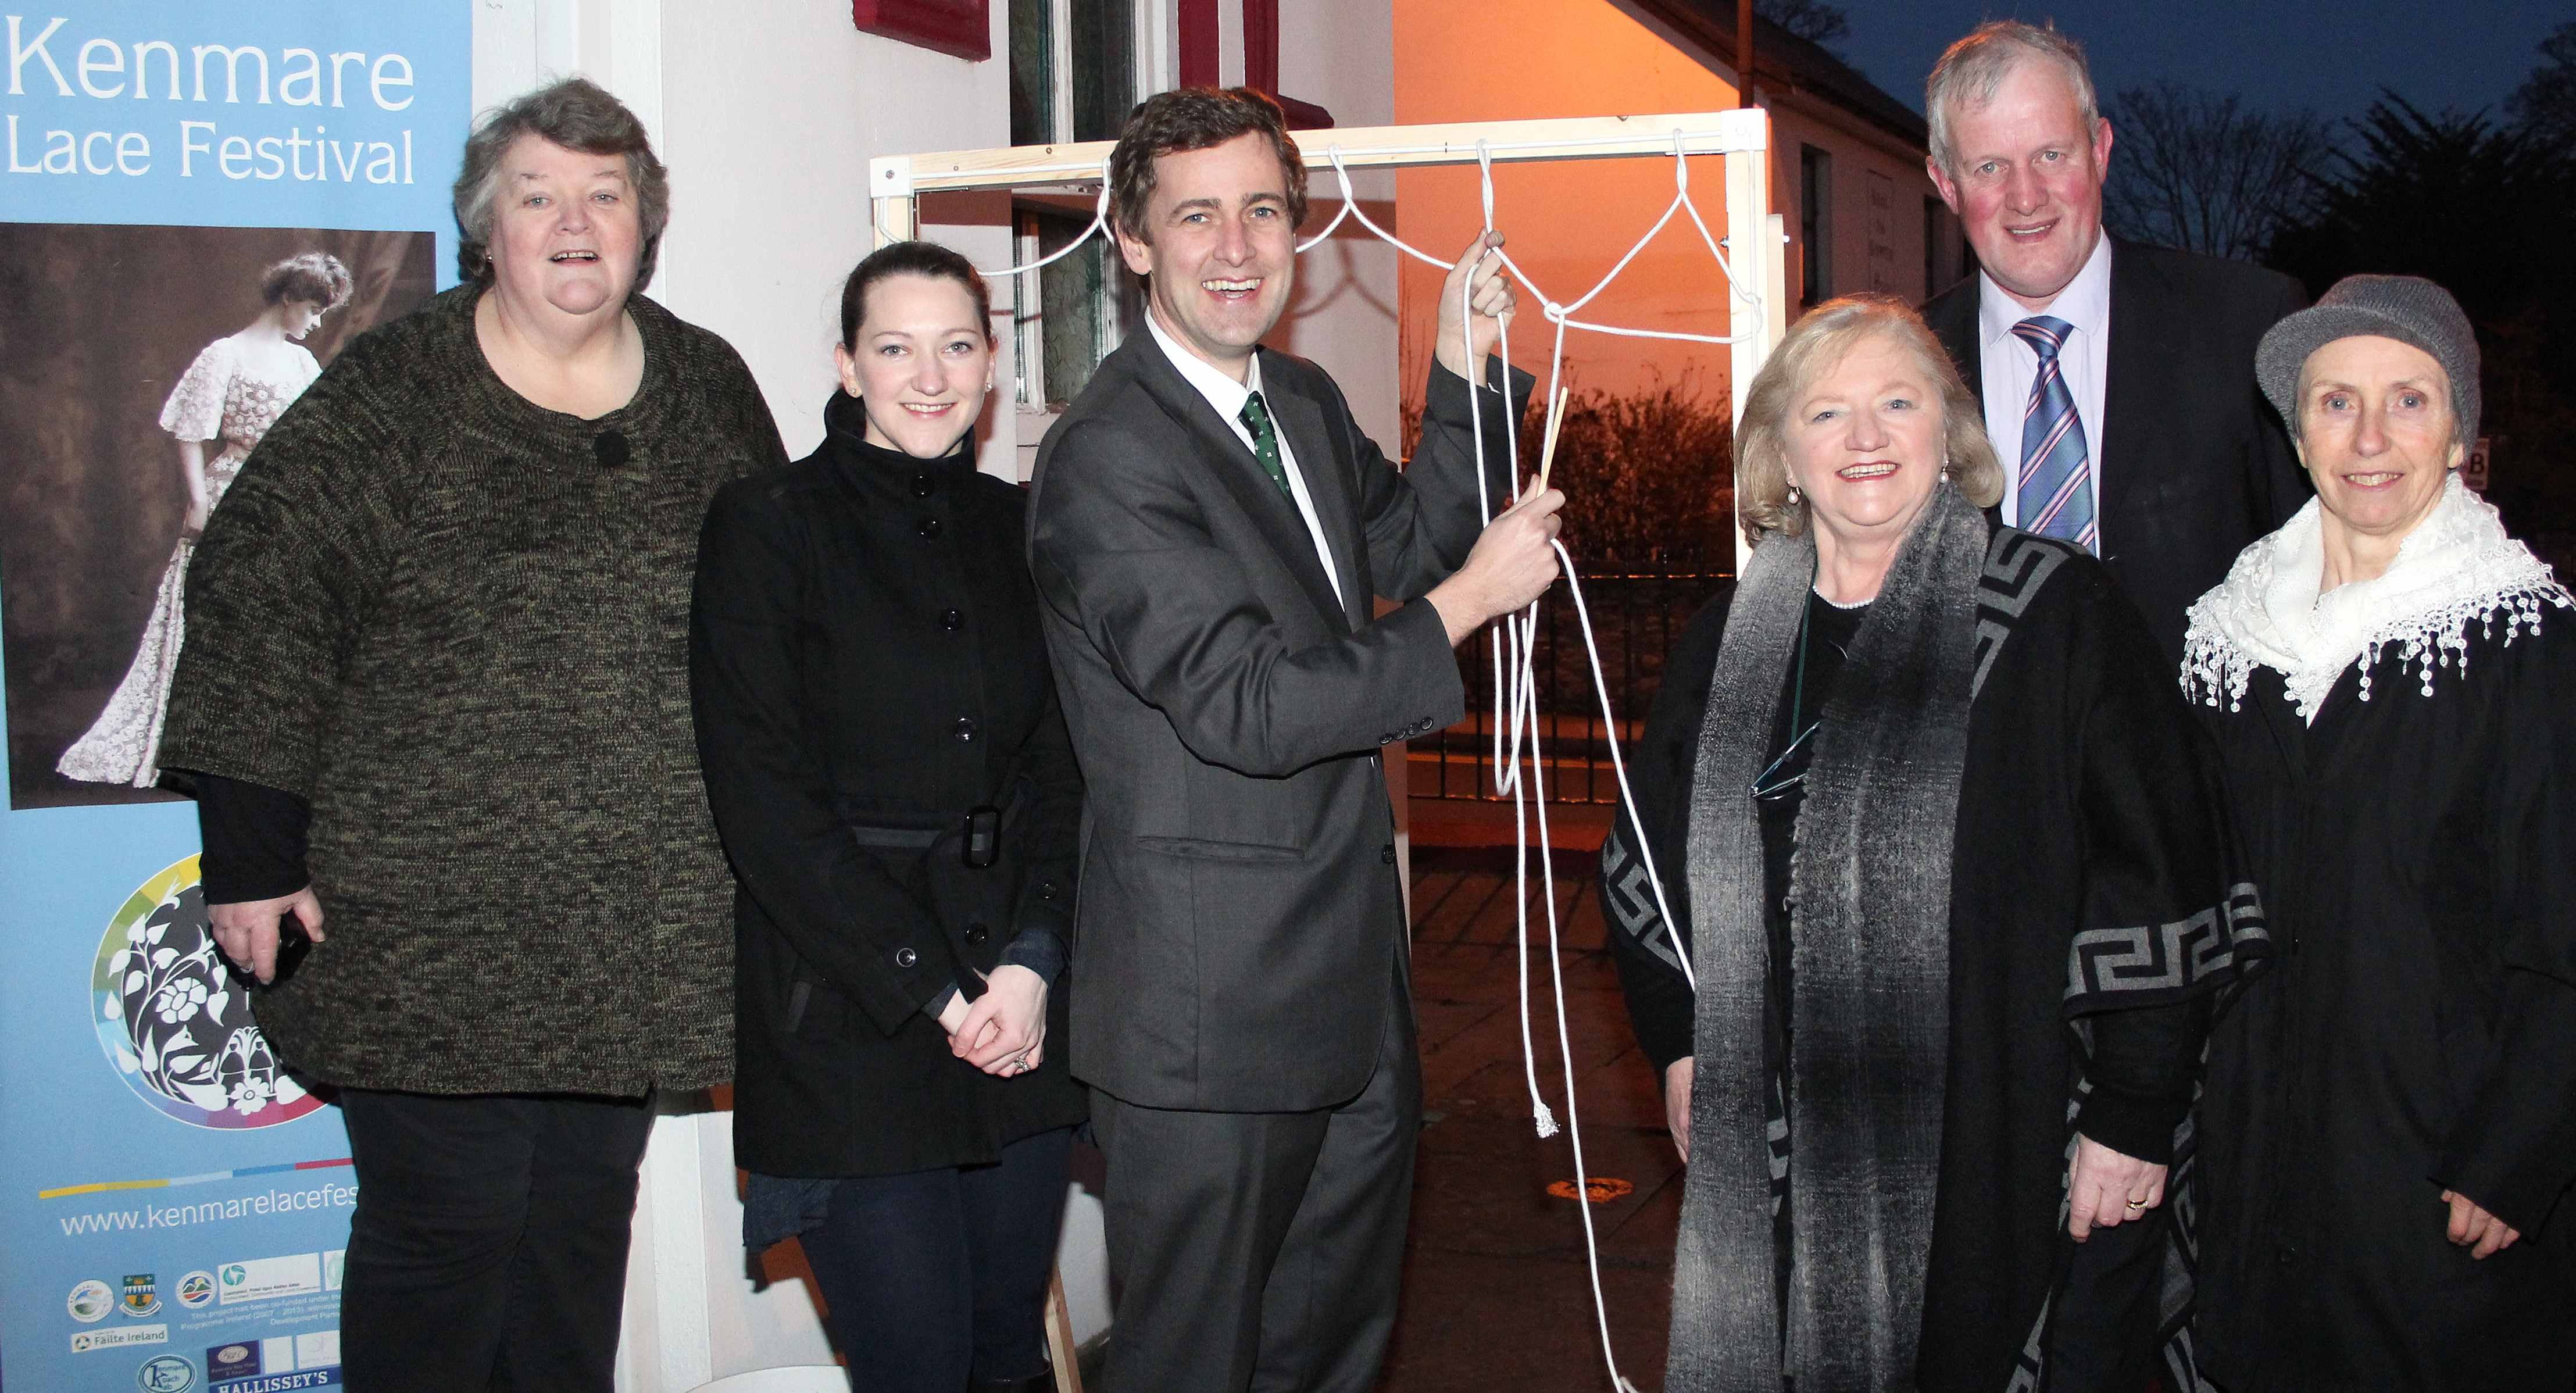 Pictured at the Launch of Kenmare Lace Festival